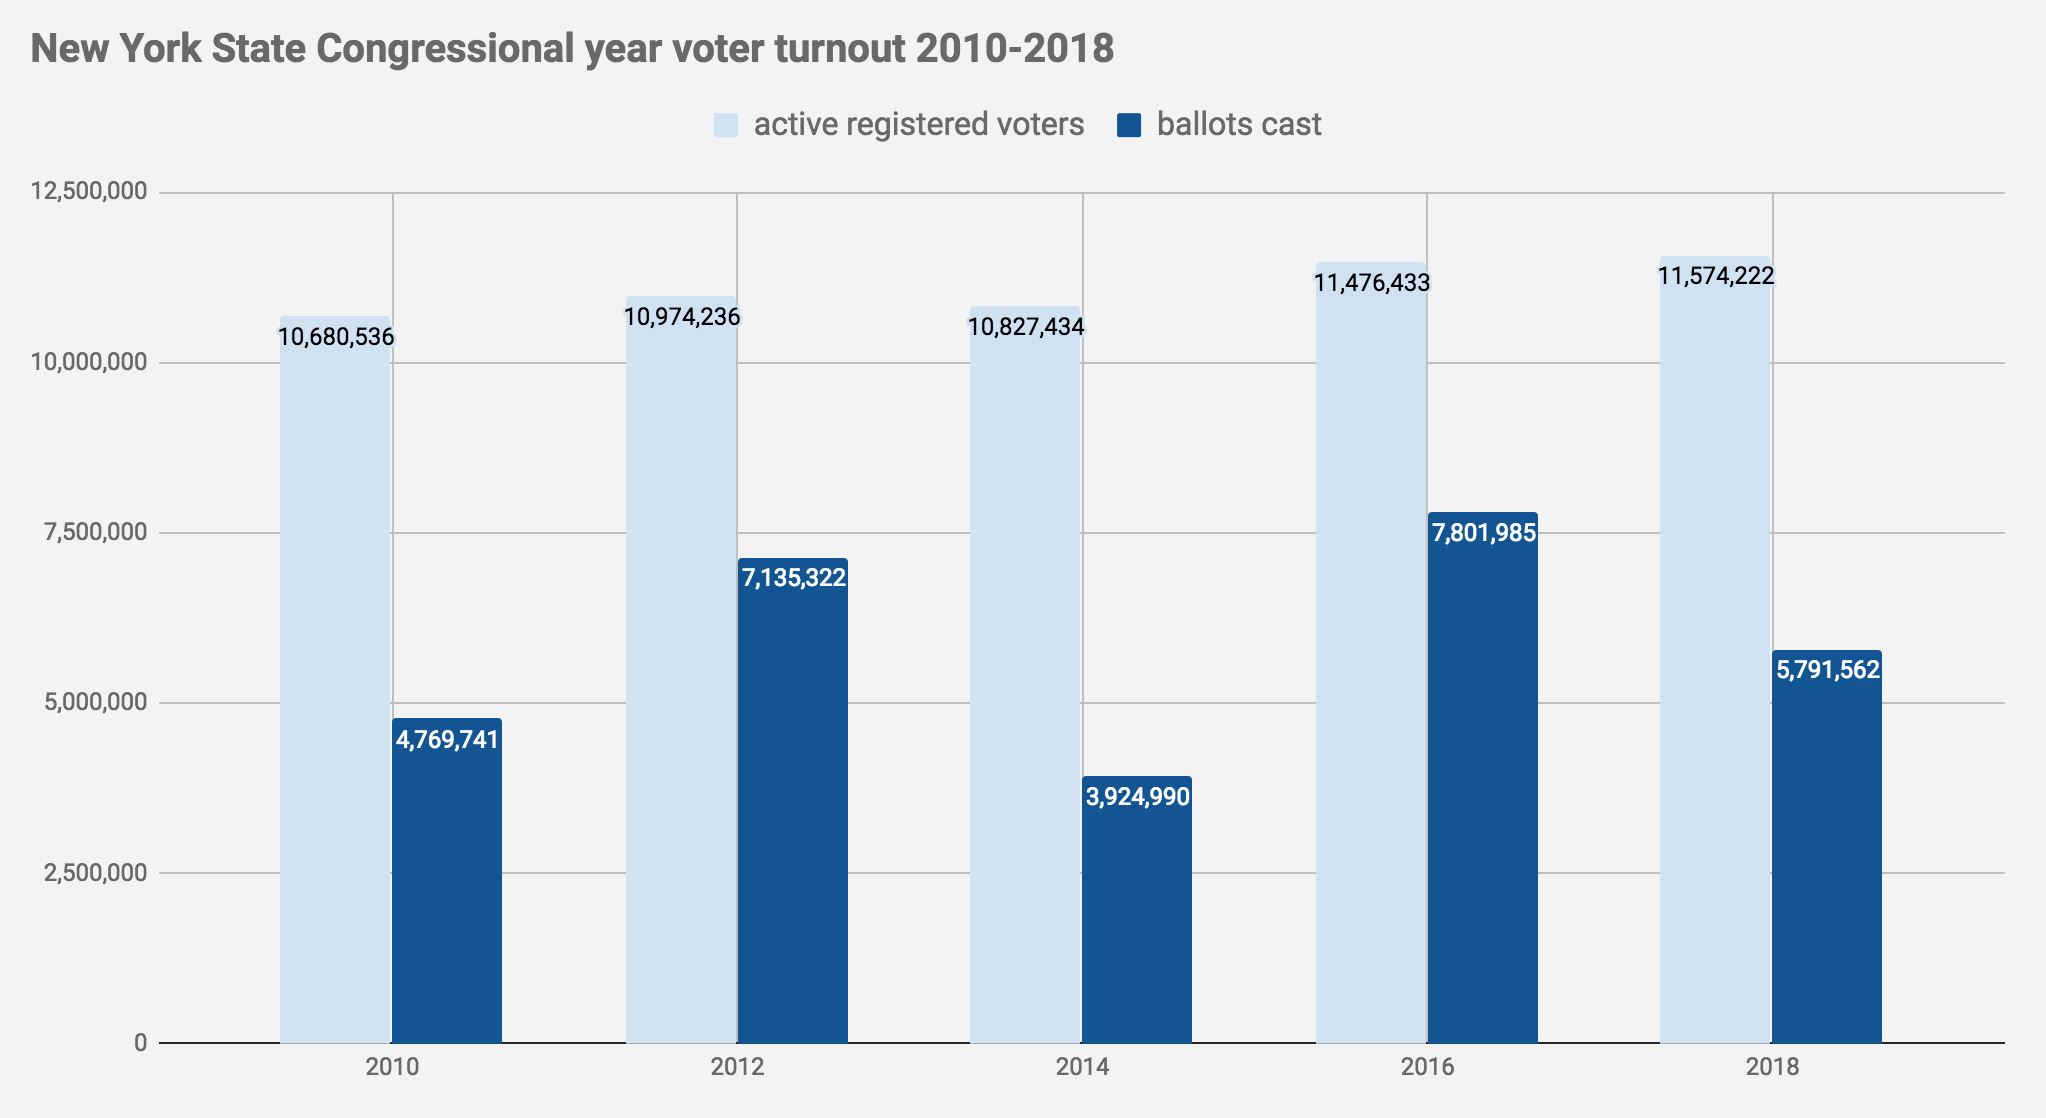 Election2018_NYS_voter_turnout.png